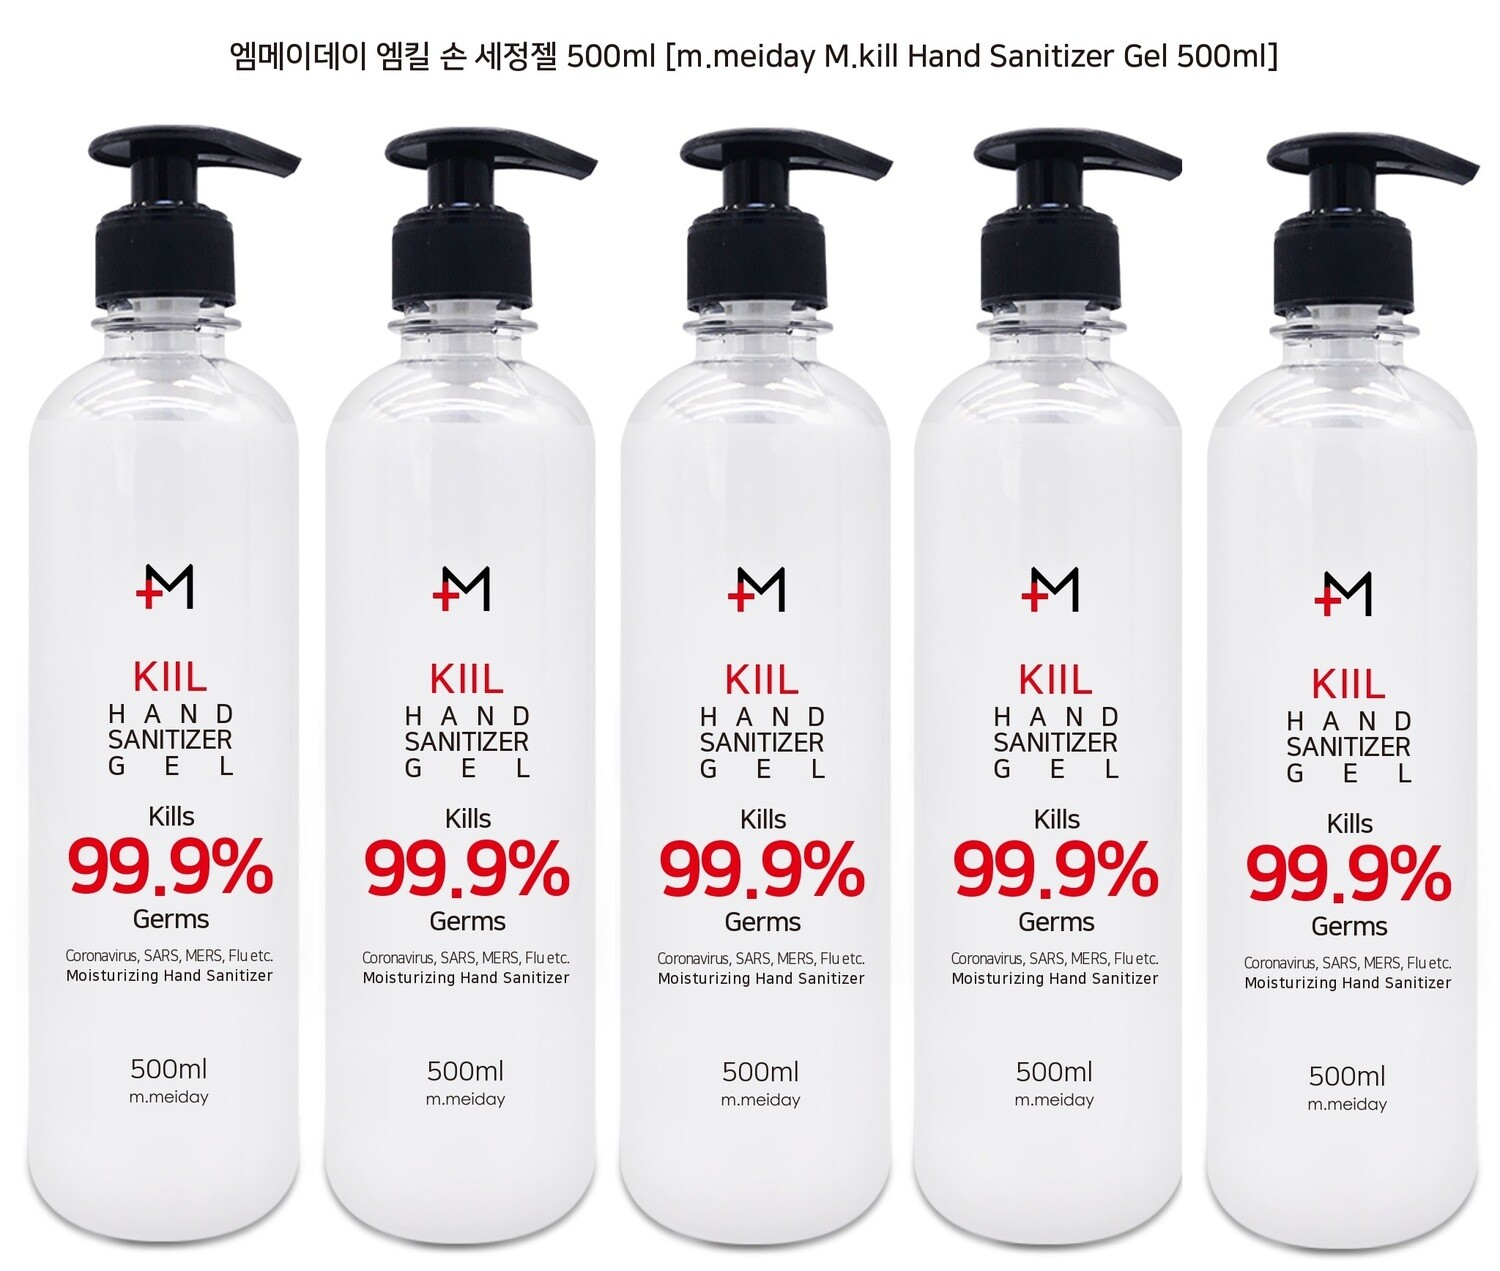 M.MEIDAY M.KILL HAND SANITIZER GEL- 70% alcohol (500ml/16.9oz)*5 bottles - FREE SHIPPING  (Made in Korea)